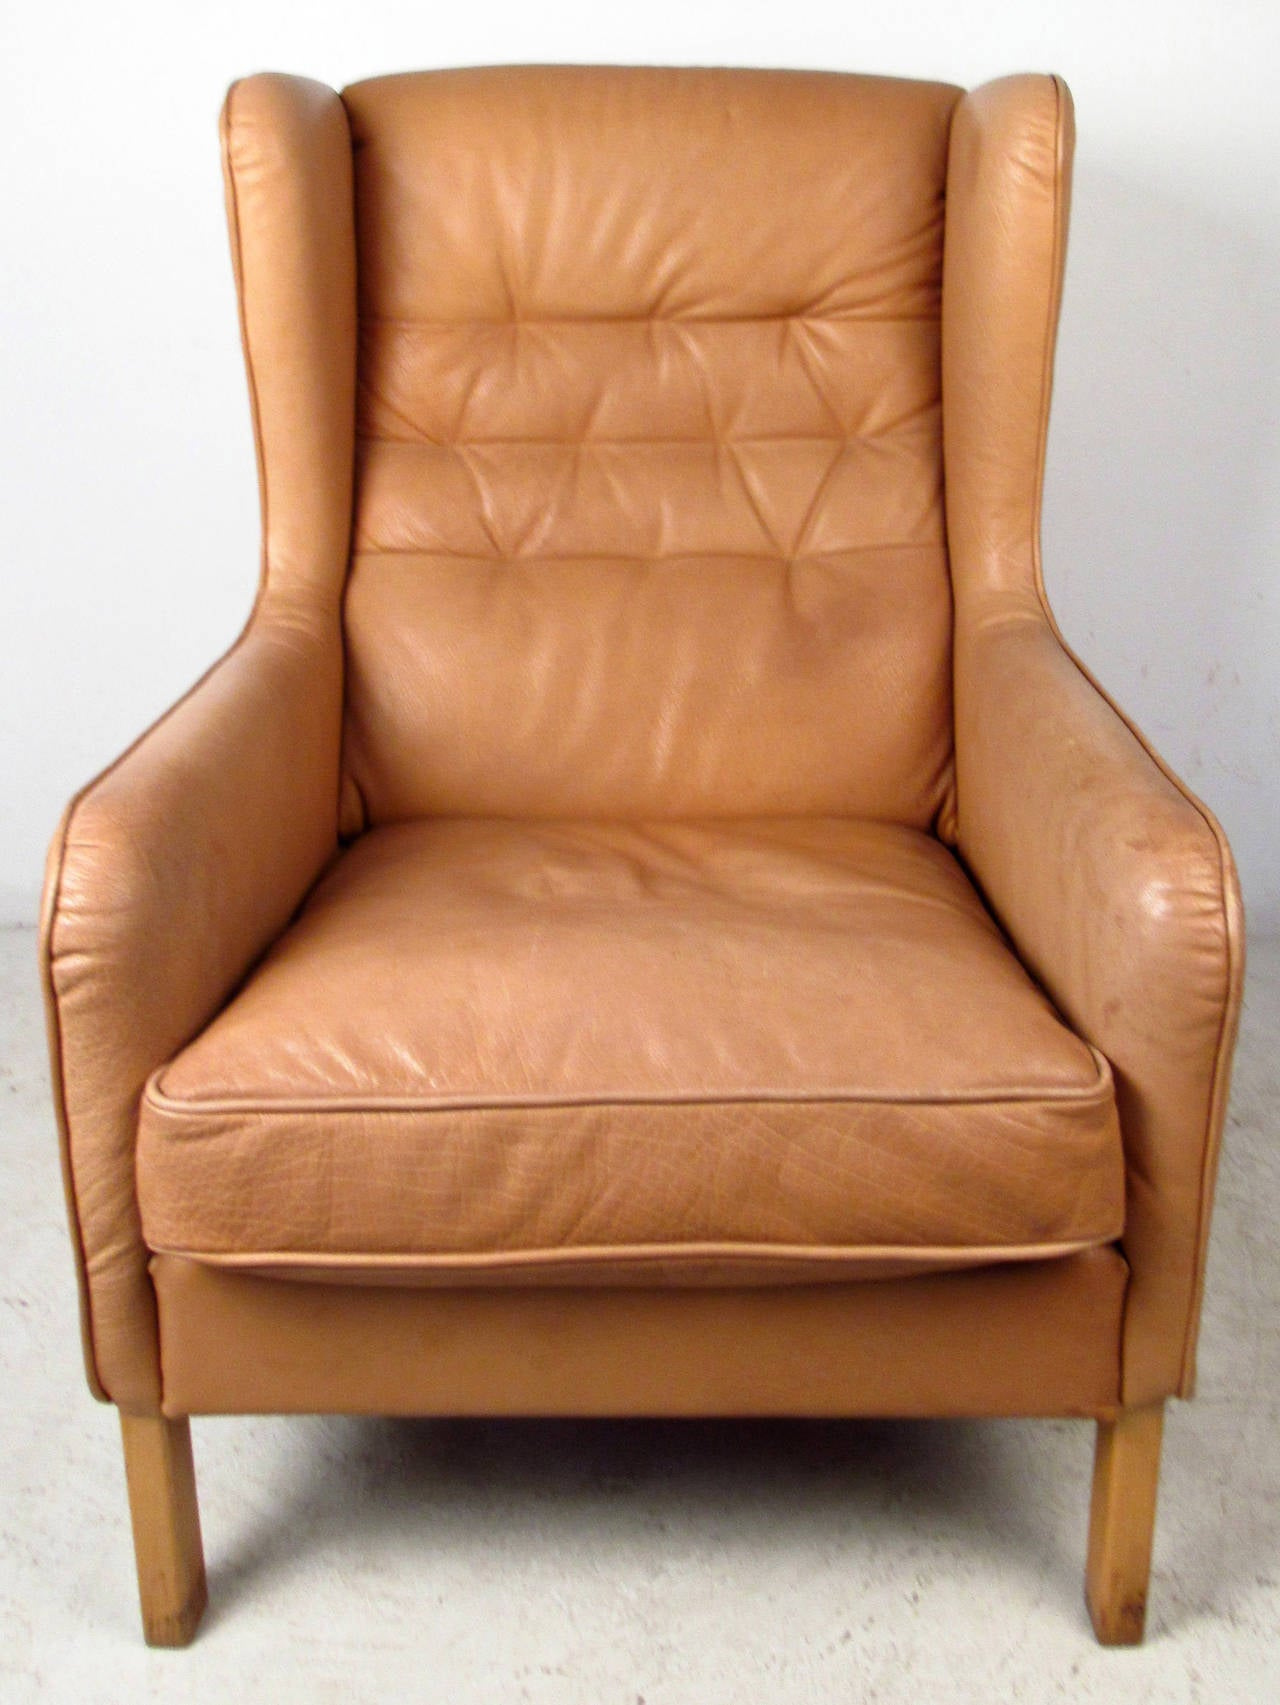 Vintage-modern leather lounge chair, featuring tufted wing back, blonde legs and removable seat cushion. Designed in the manner of Børge Mogensen.  Please confirm item location NY or NJ with dealer.